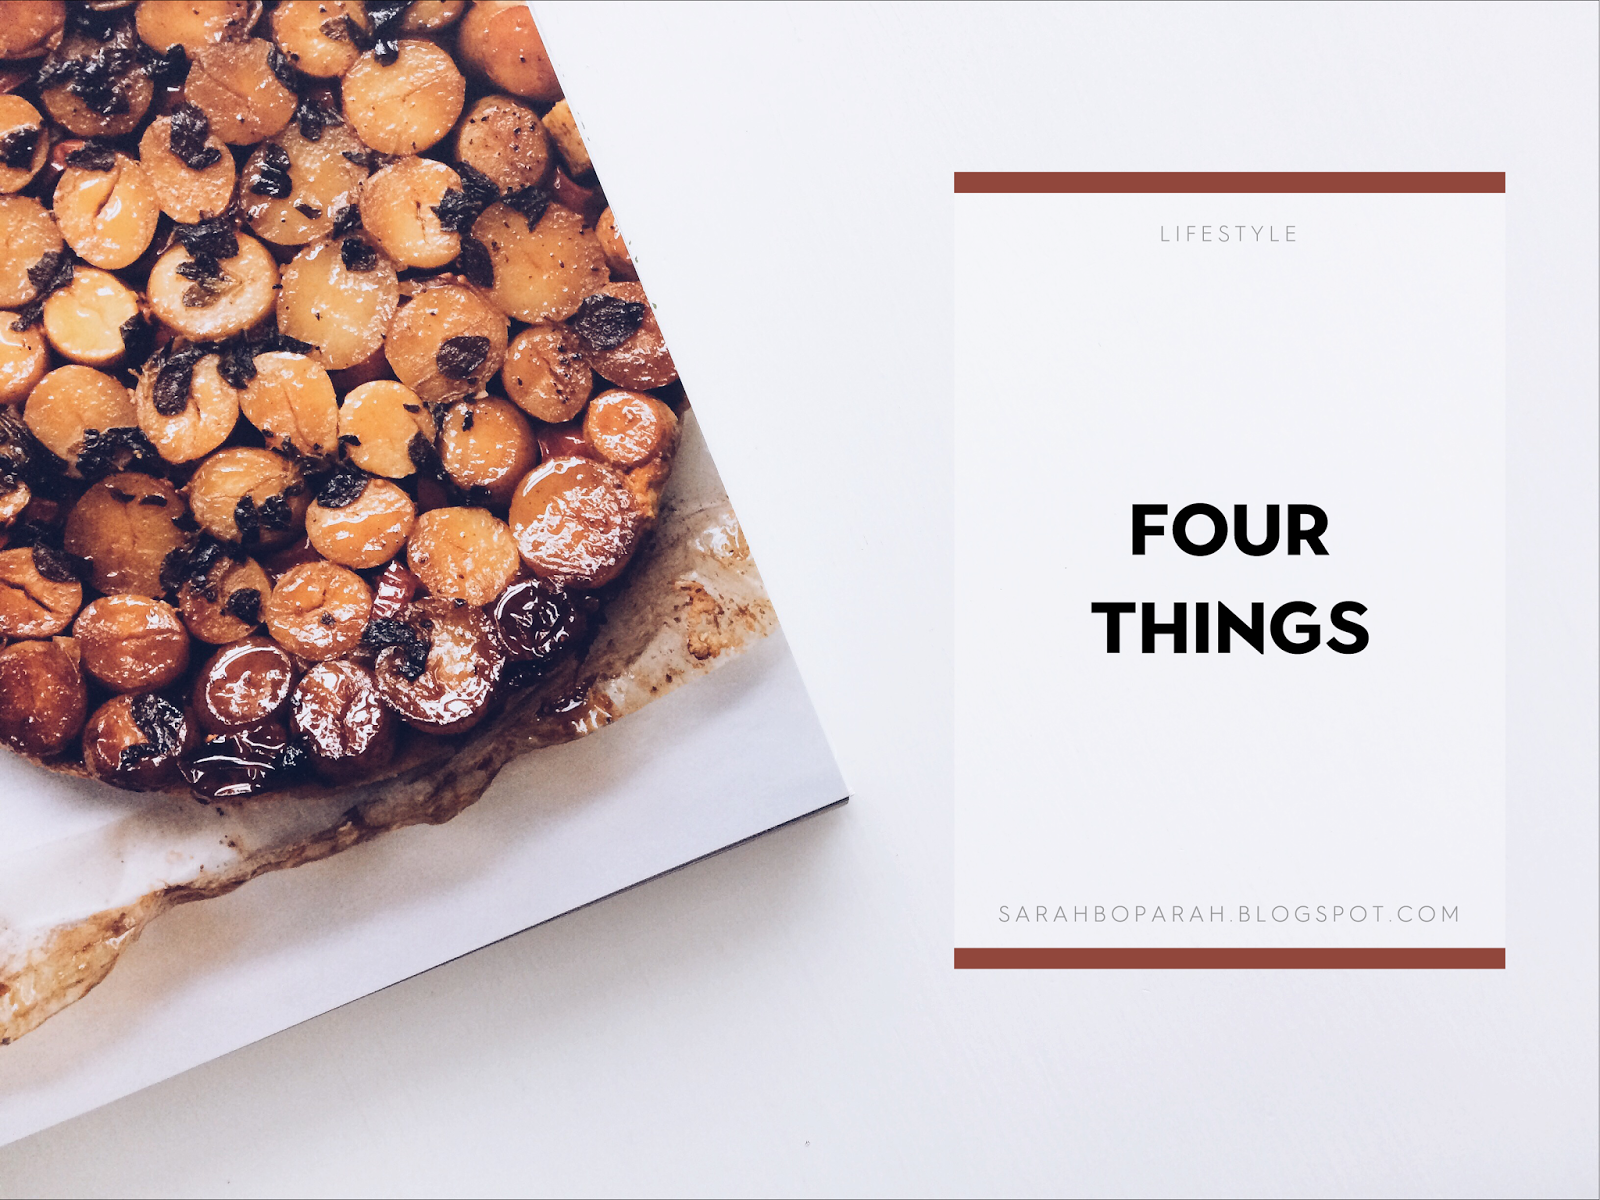 Four Things from Sarahboparah.